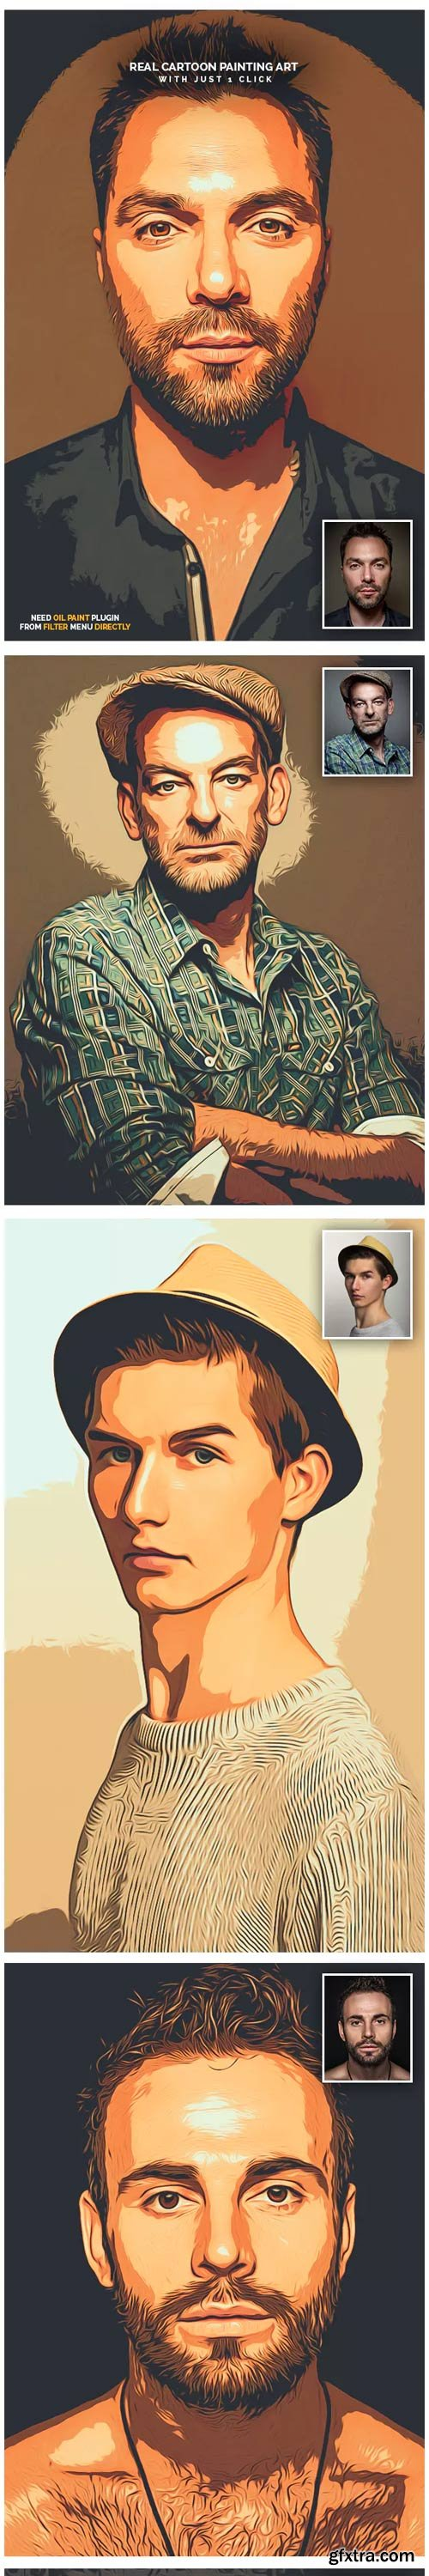 GraphicRiver - Real Cartoon Painting Art - 23063043